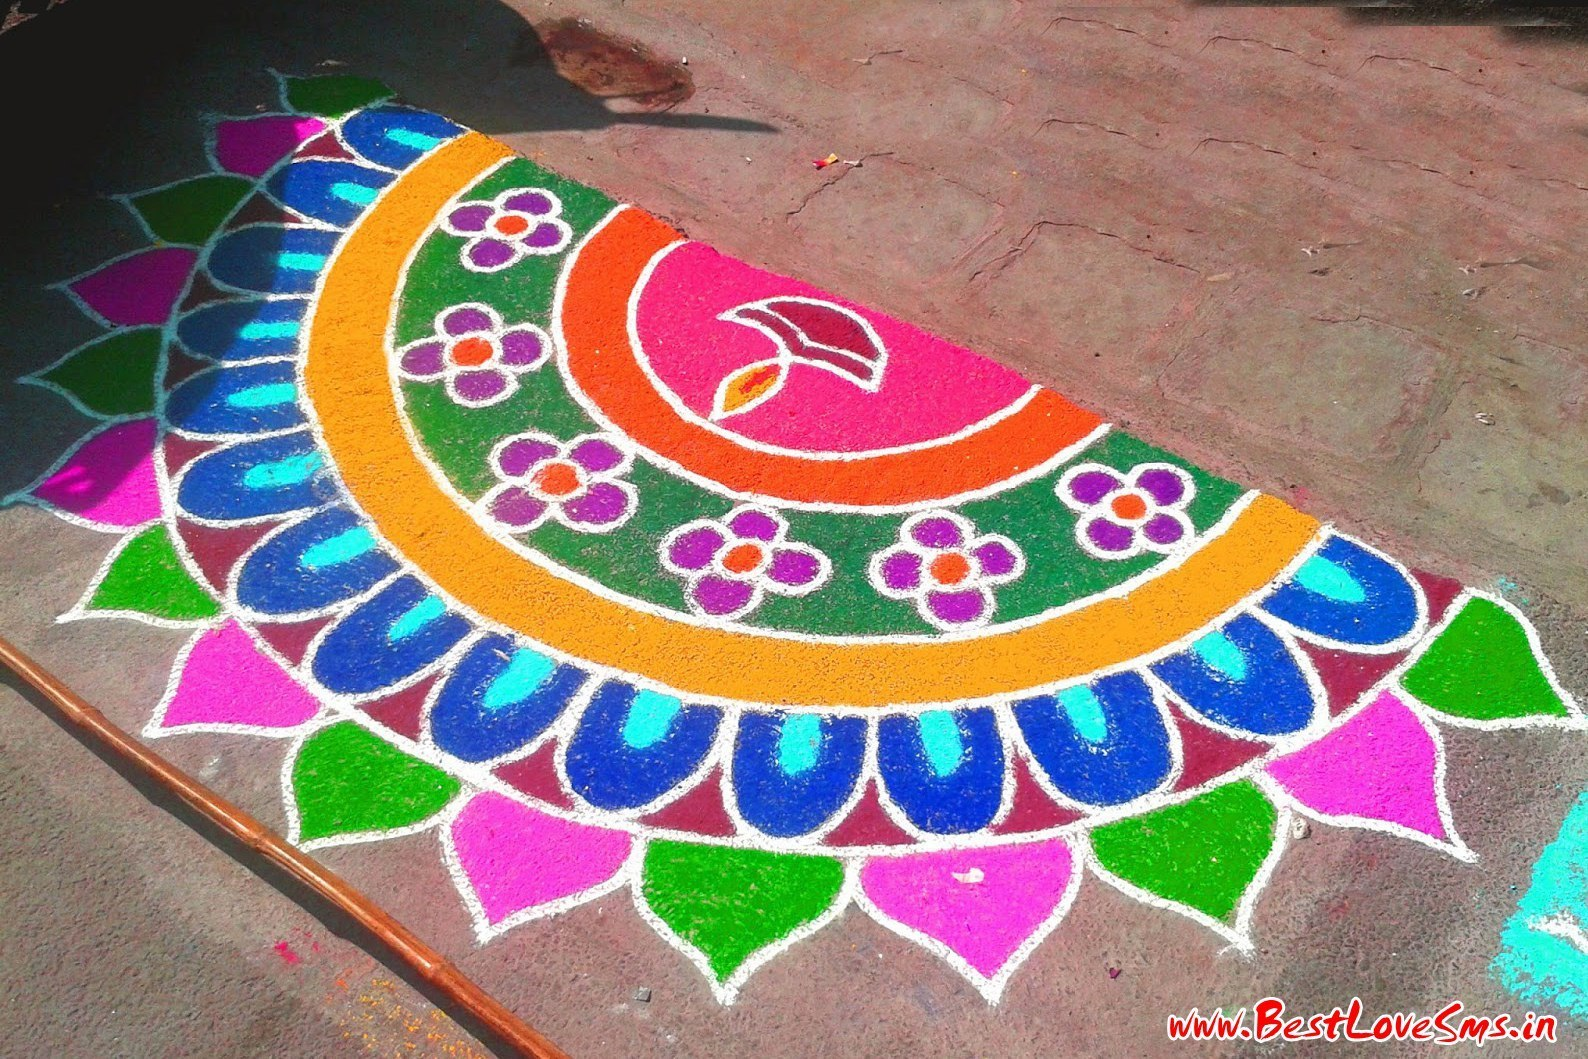 rangoli designs in circle shape